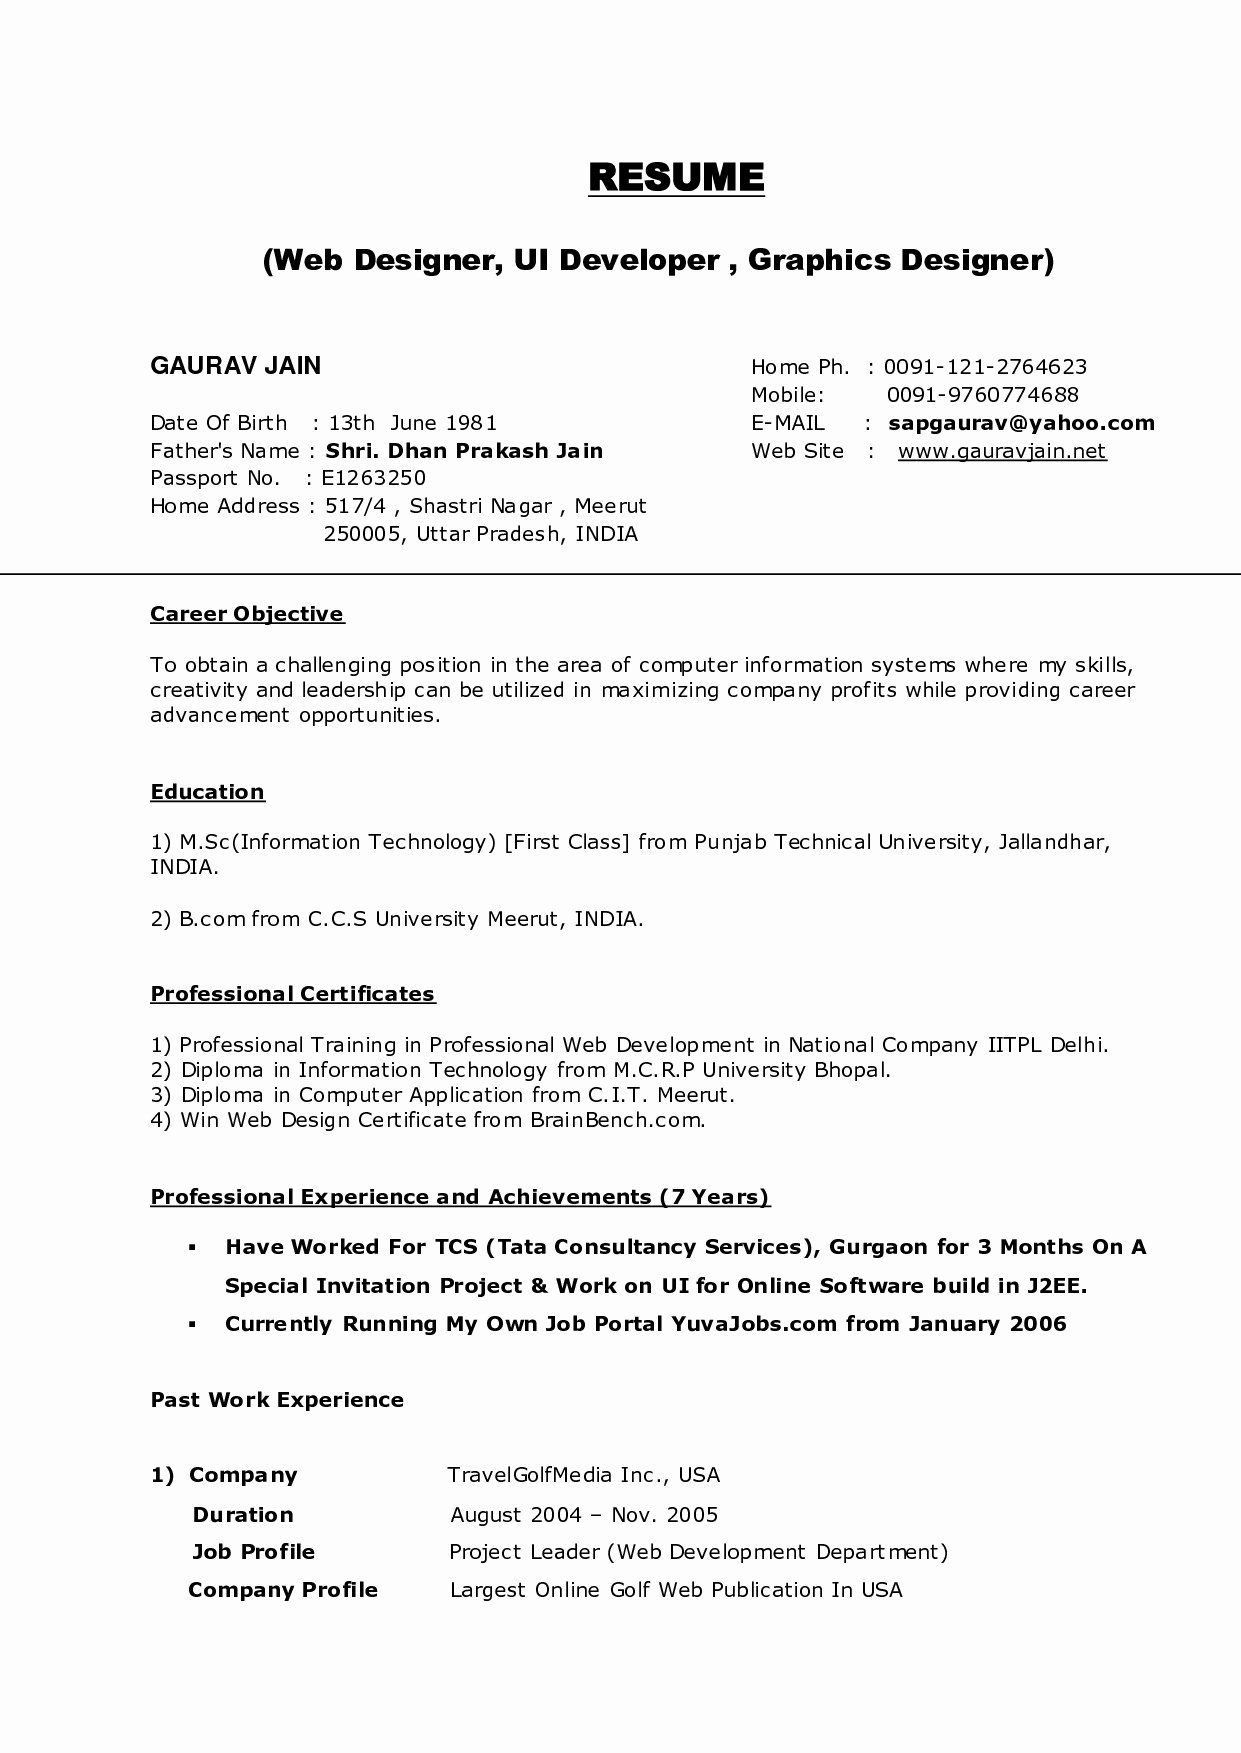 Resume Template Download for Wordpad